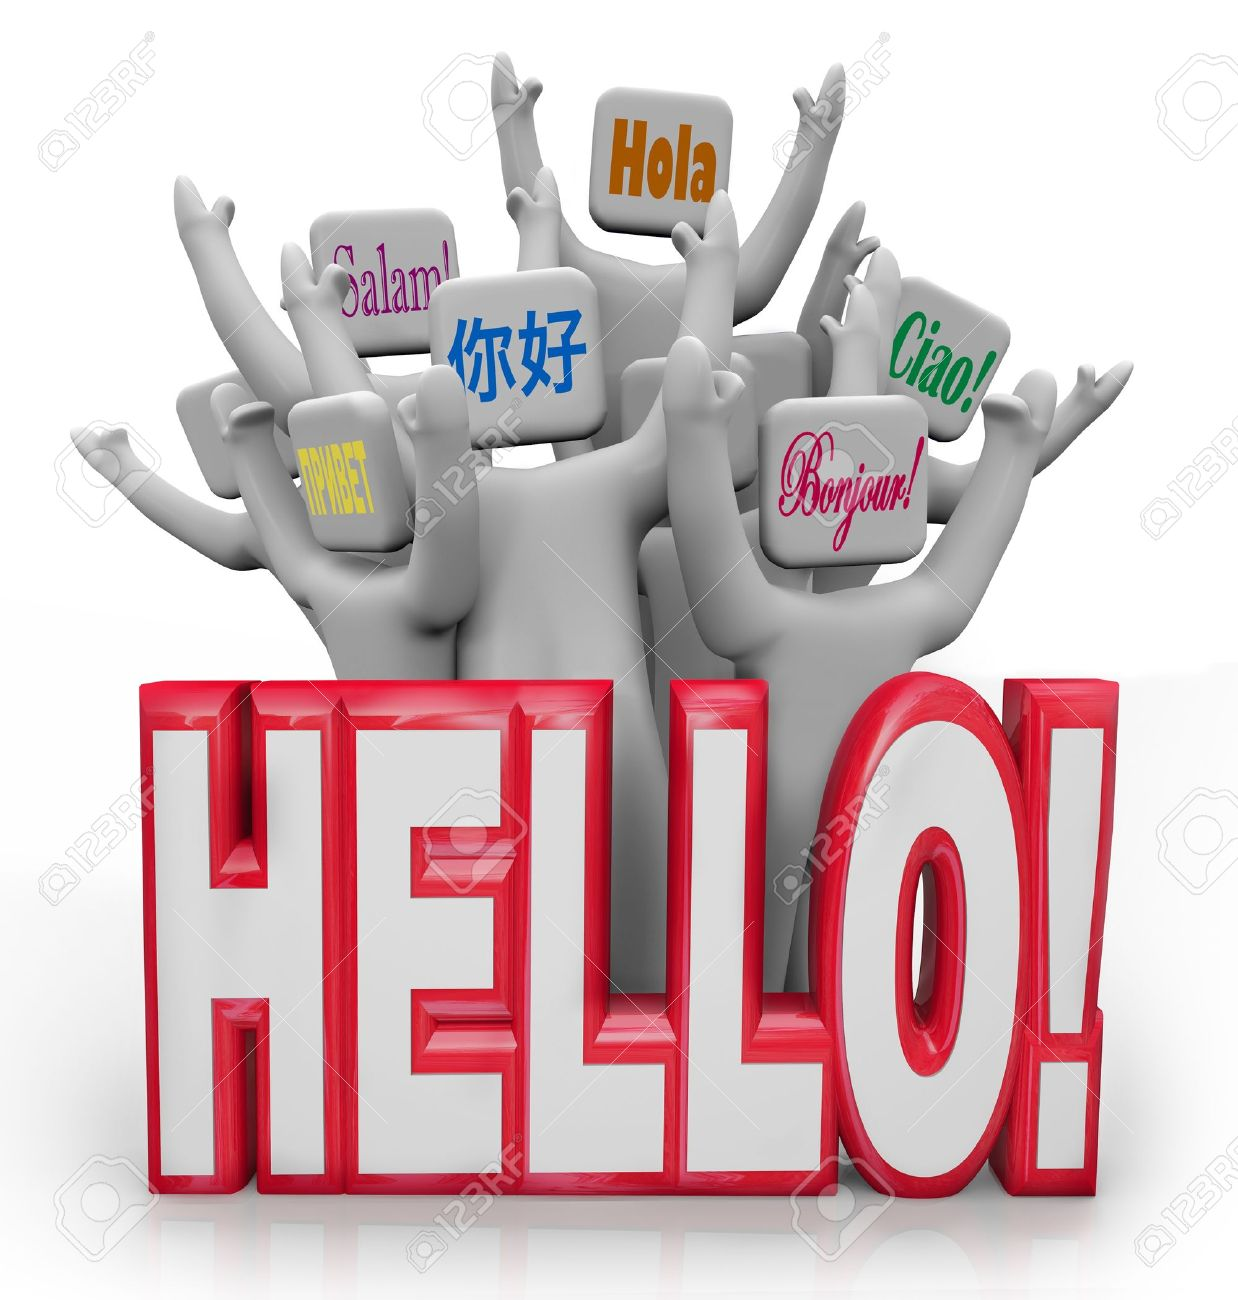 Several people greet each other with the word Hello spoken in different international languages from around the world, with the words ciao, bonjour, hola and more Stock Photo - 14507888